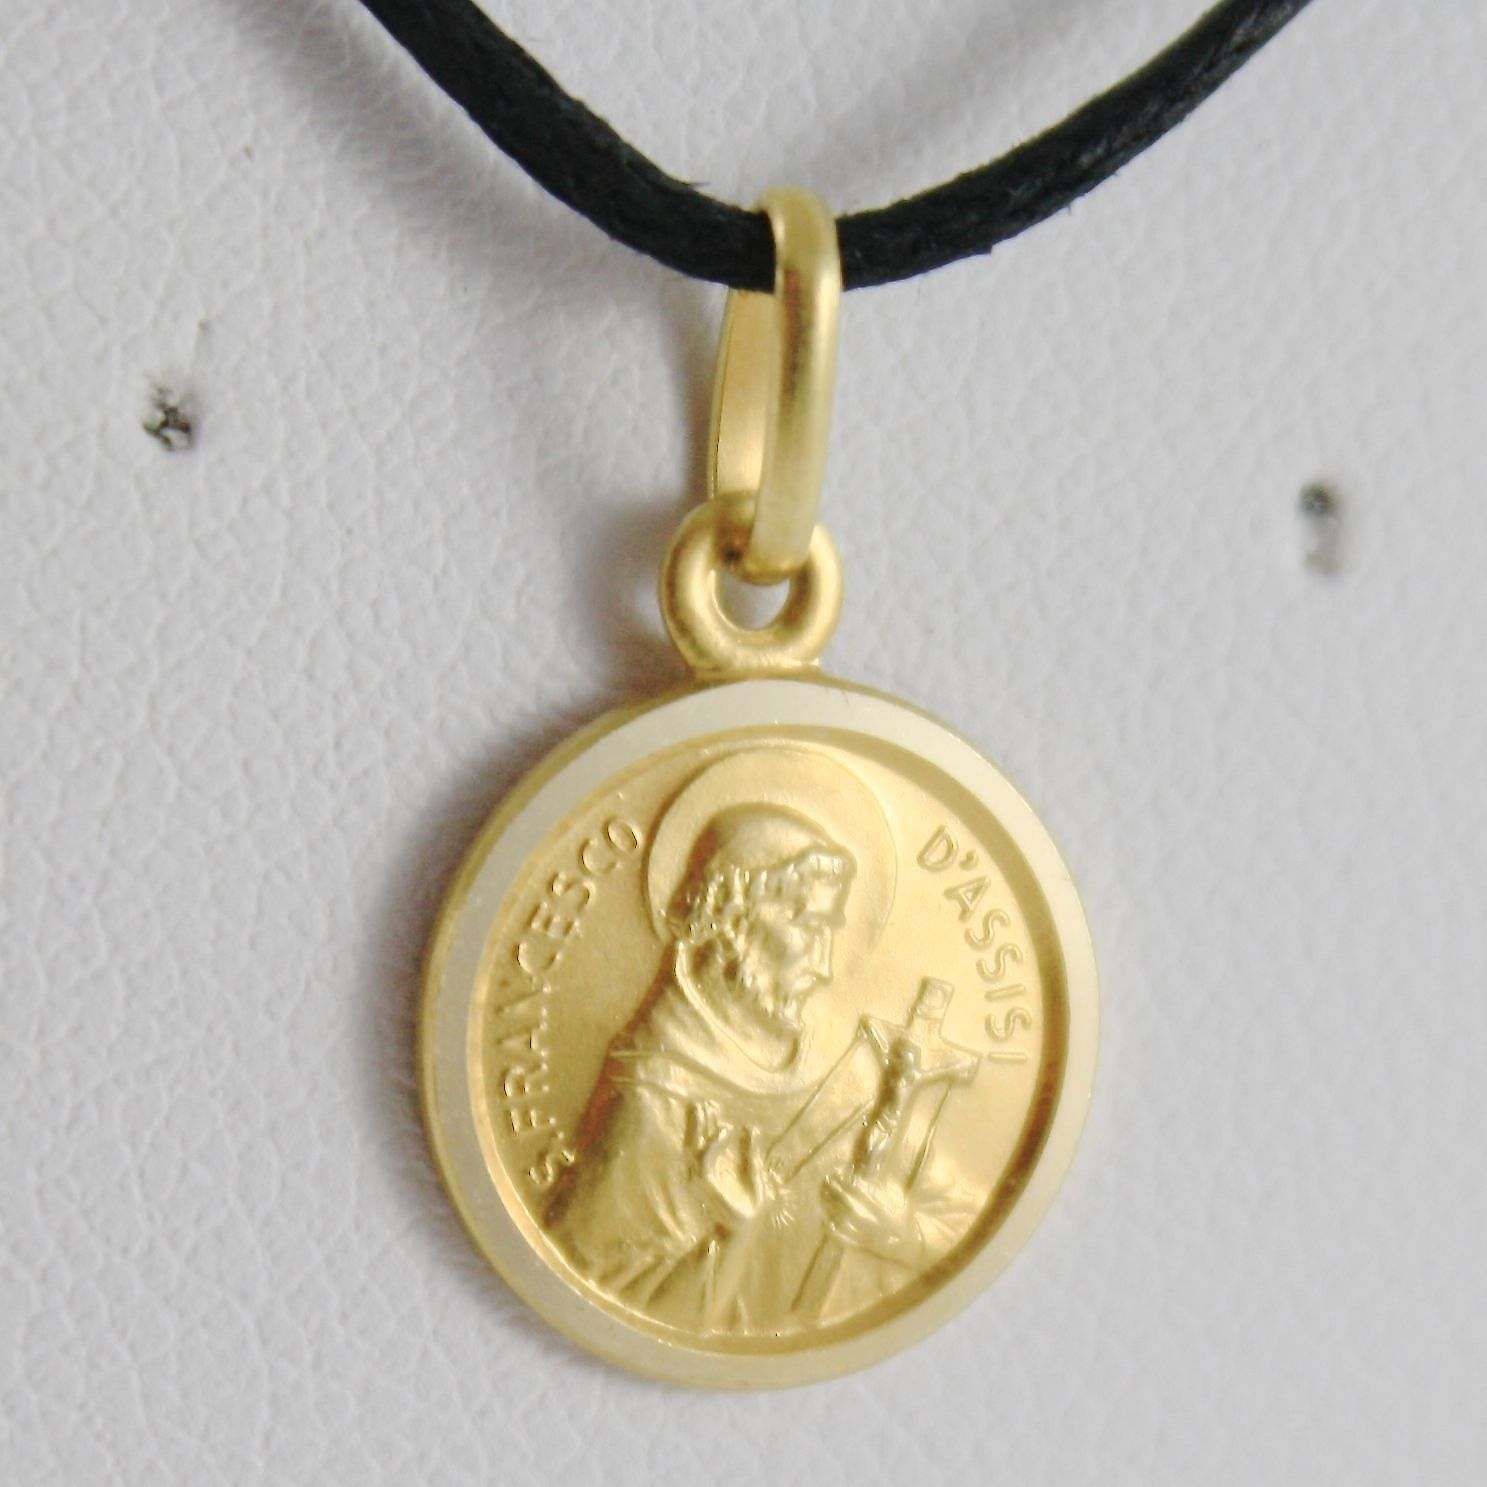 PENDENTIF MÉDAILLE OR JAUNE 750 18K, SAN FRANCESCO D'ASSISE 13 MM MADE IN ITALY